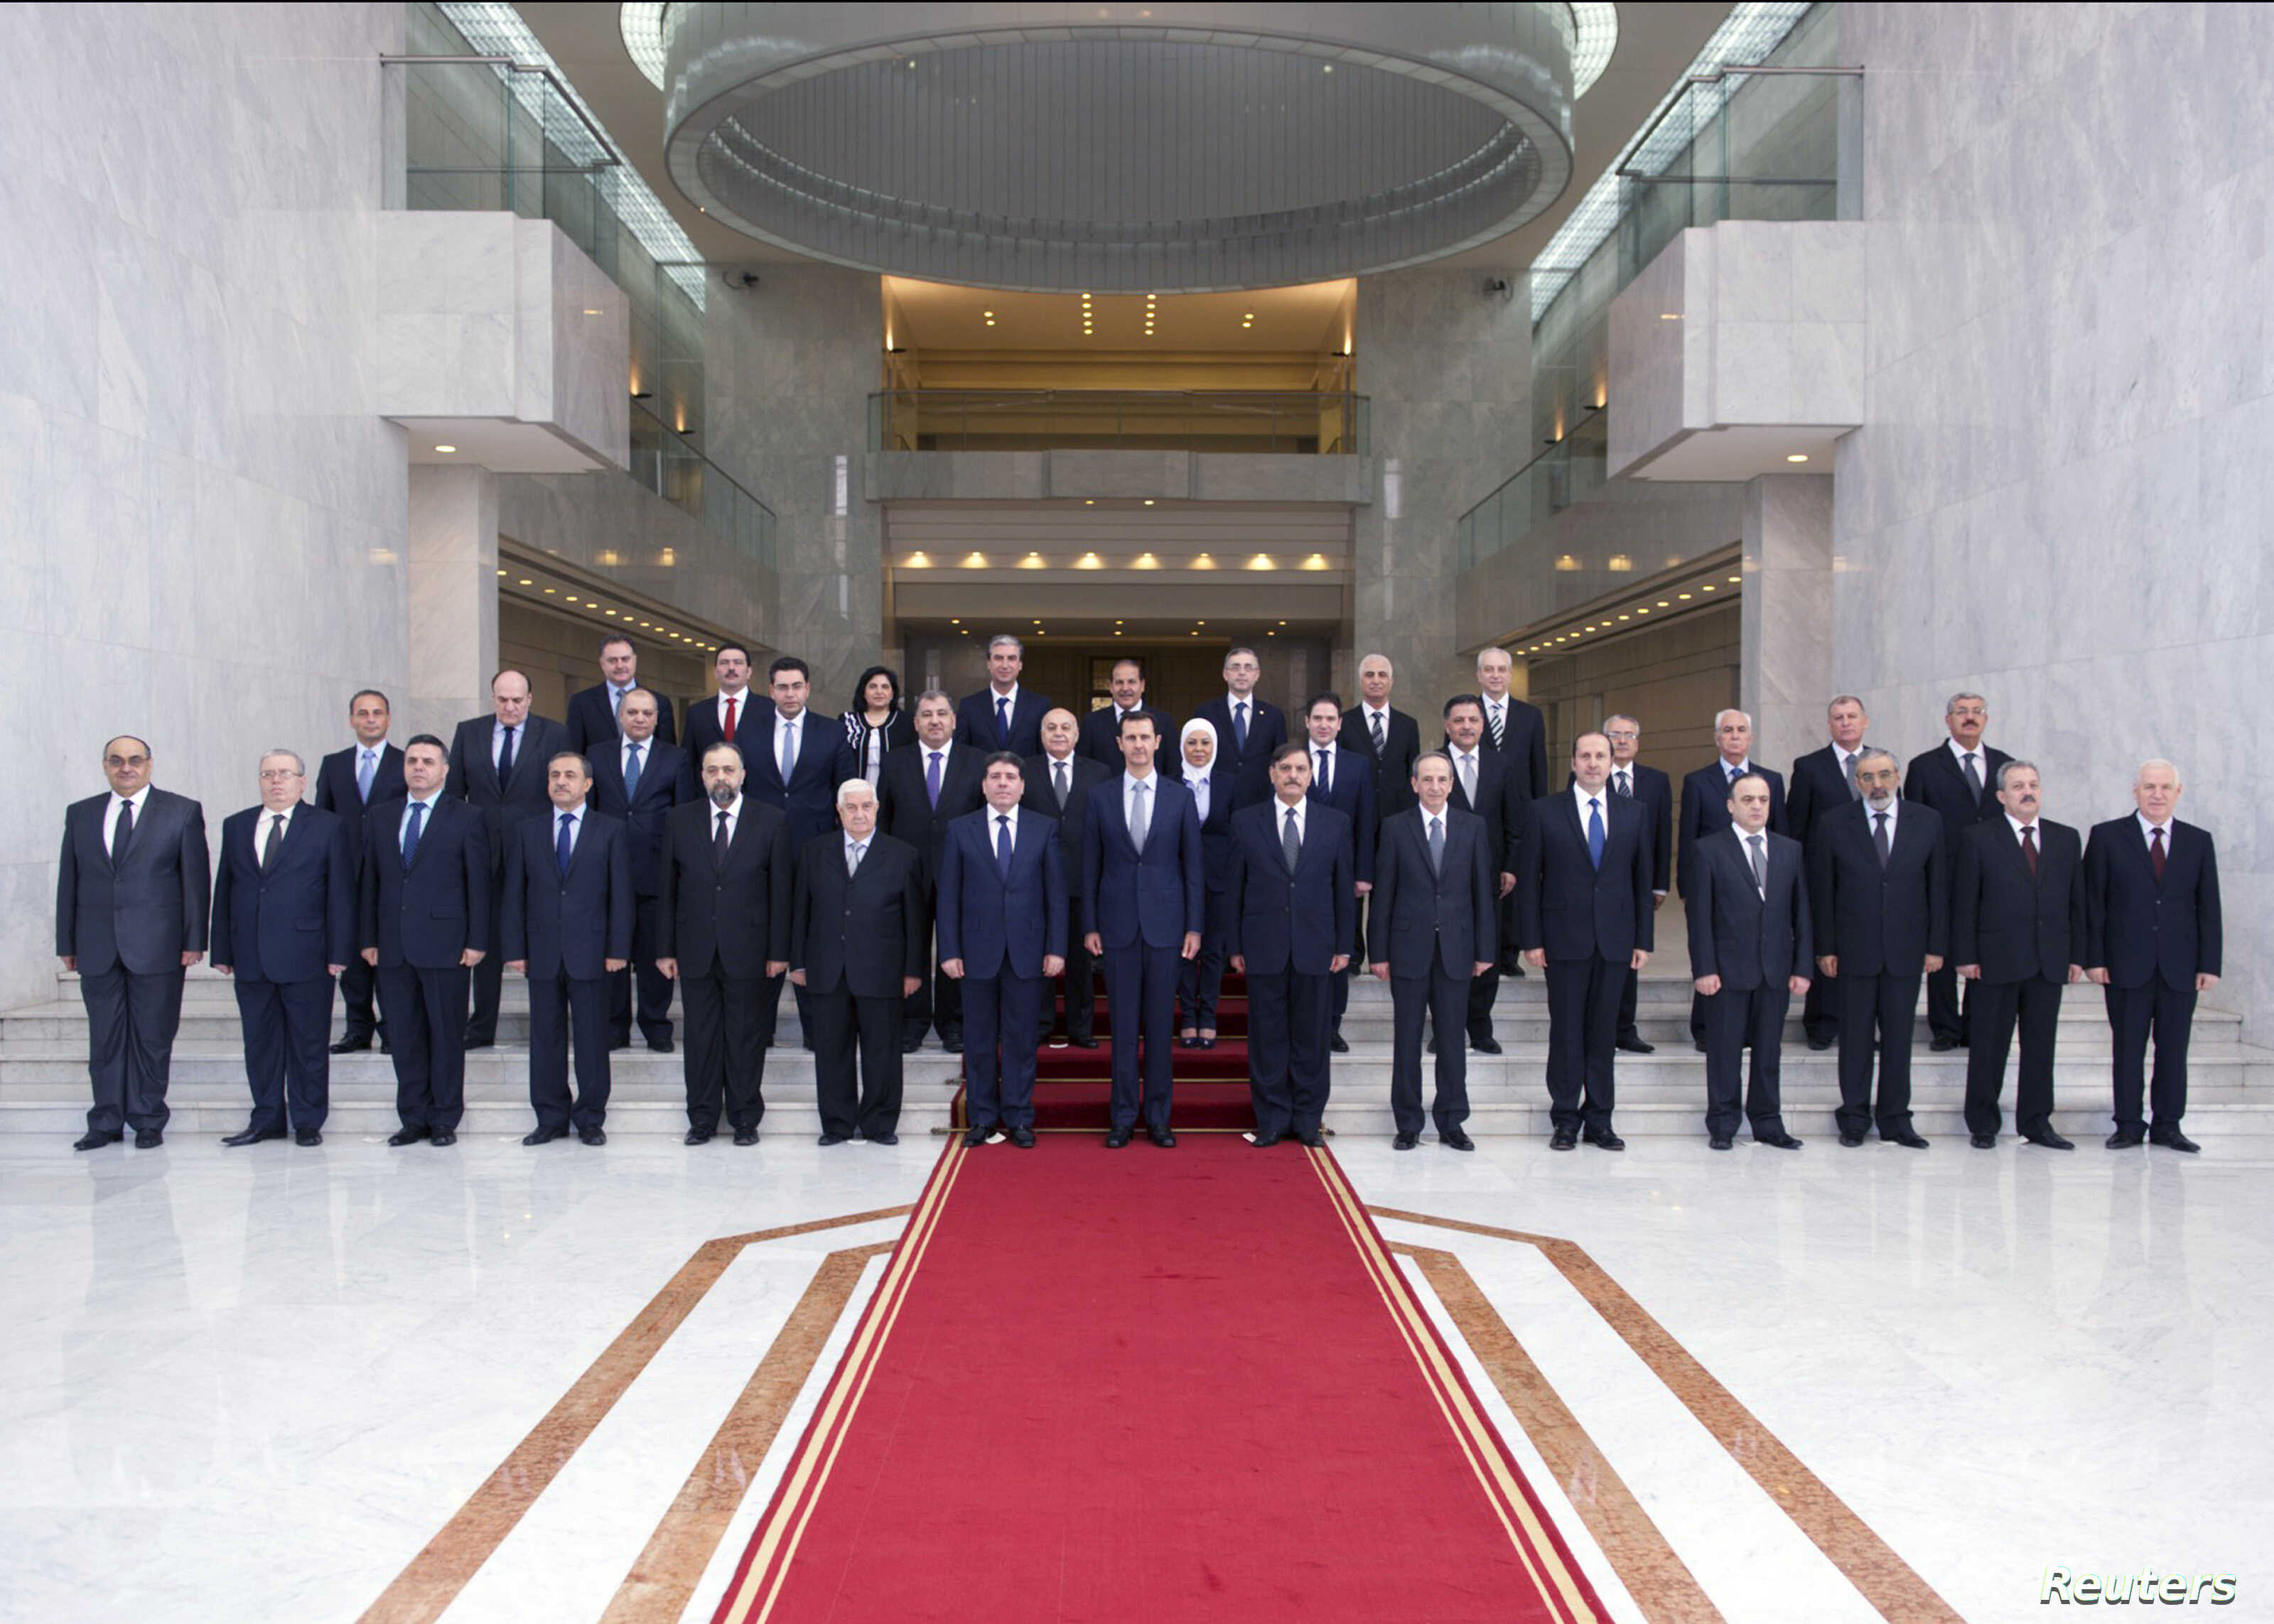 Syria's President Bashar al-Assad (front C) poses with members of his new cabinet in Damascus, Aug. 31, 2014.